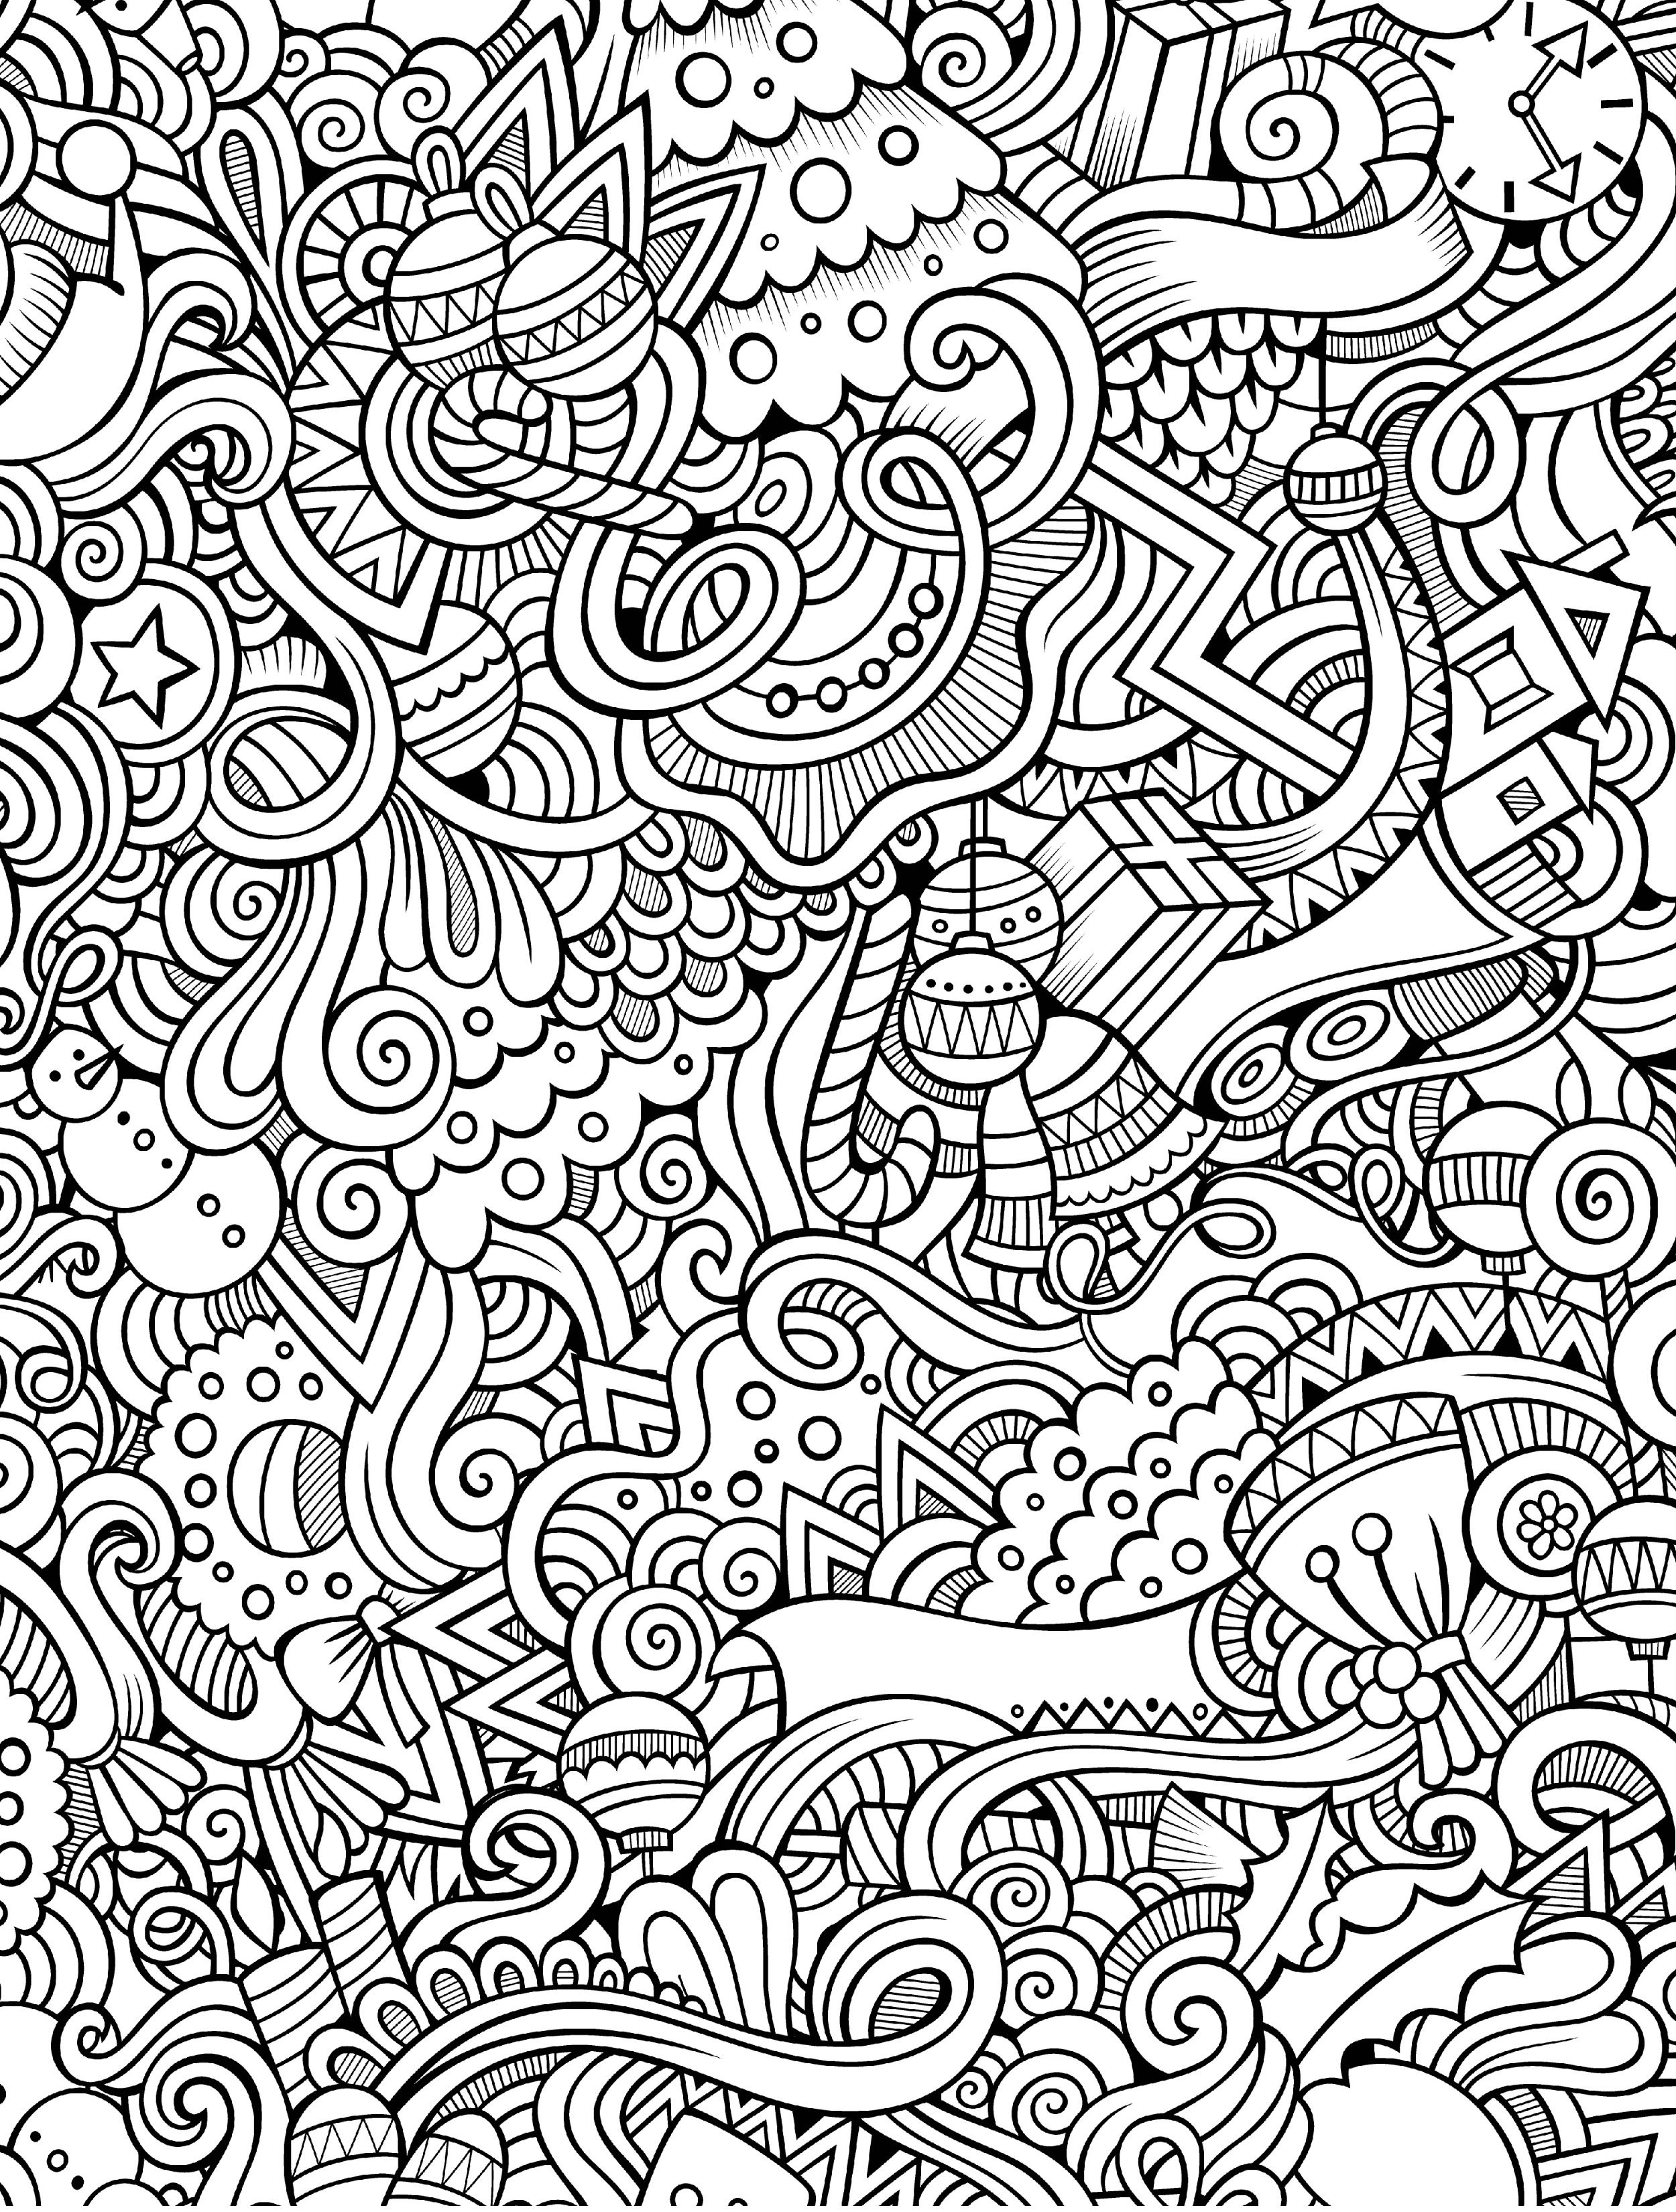 10 Free Printable Holiday Adult Coloring Pages | Color Pages